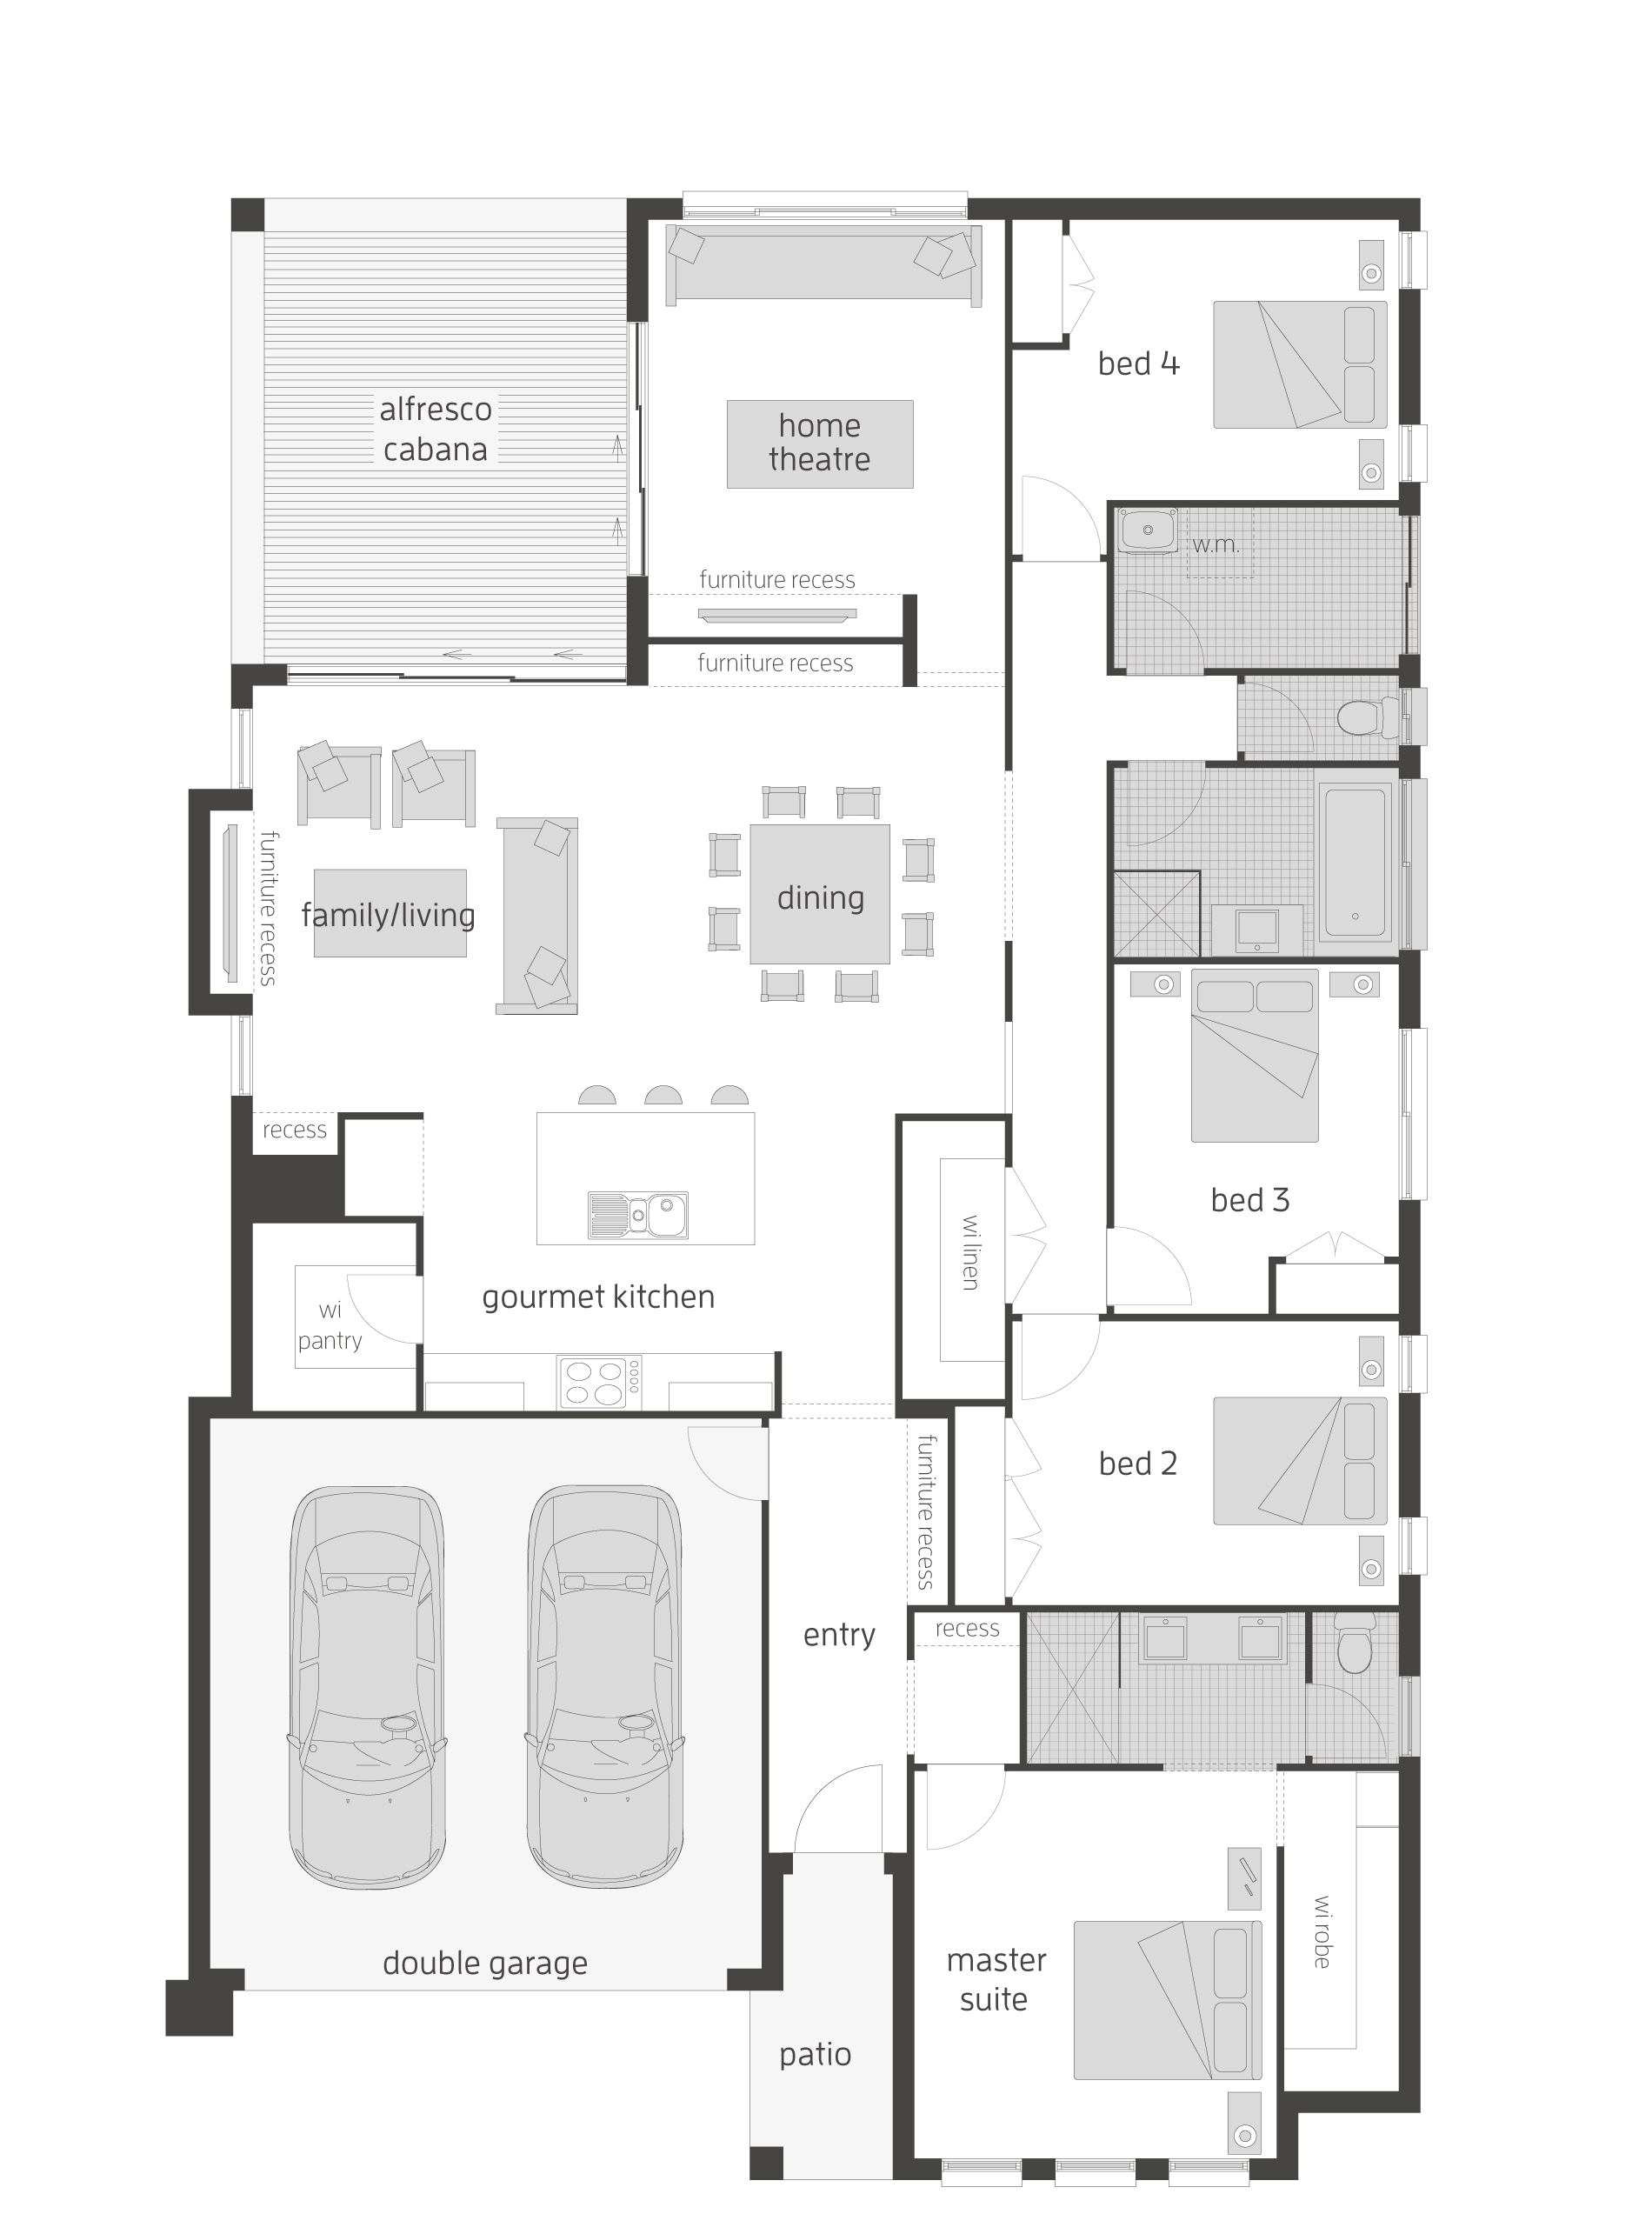 Pin By Aguniaaa On P L A N S Floor Plans New House Plans House Blueprints